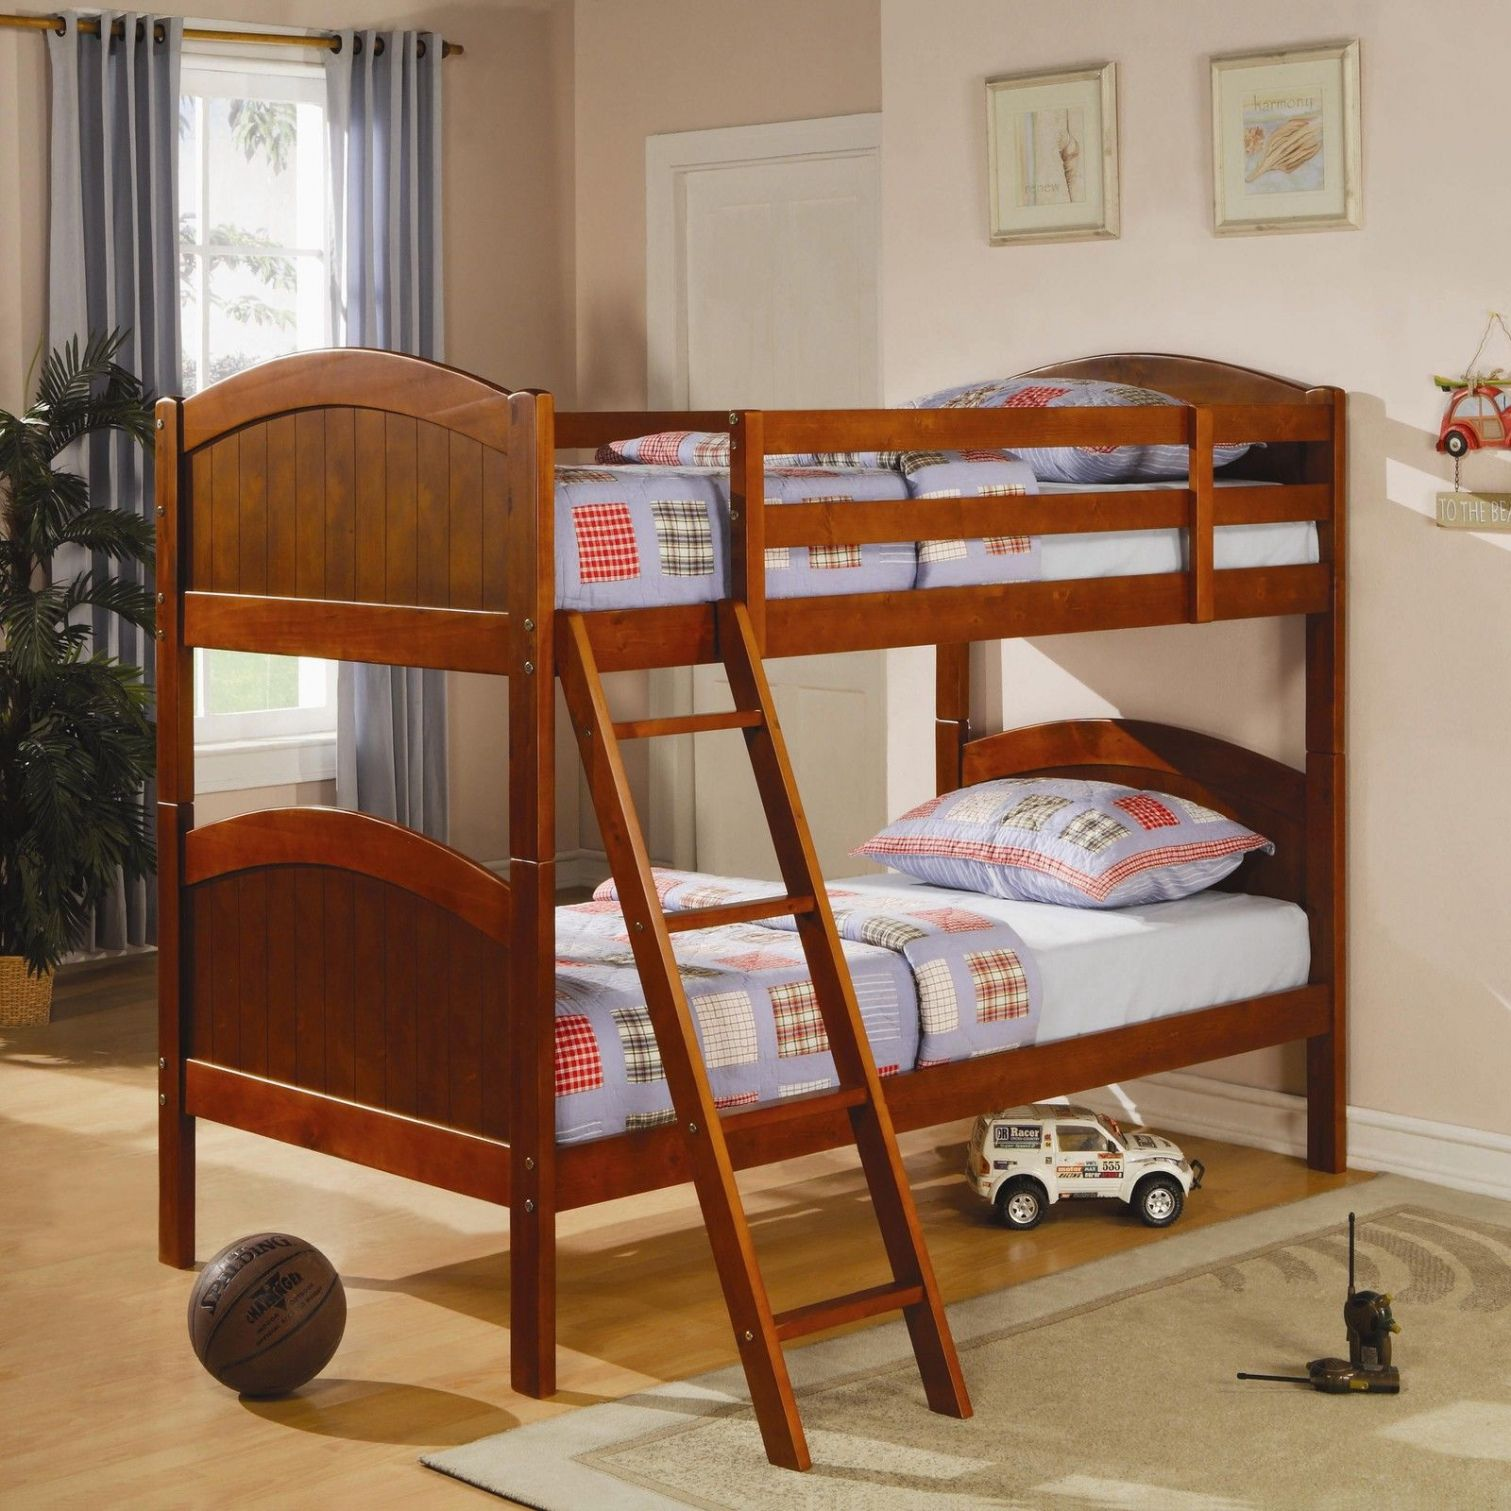 Ebay Kids Bunk Beds Interior Paint Color Ideas Check More At